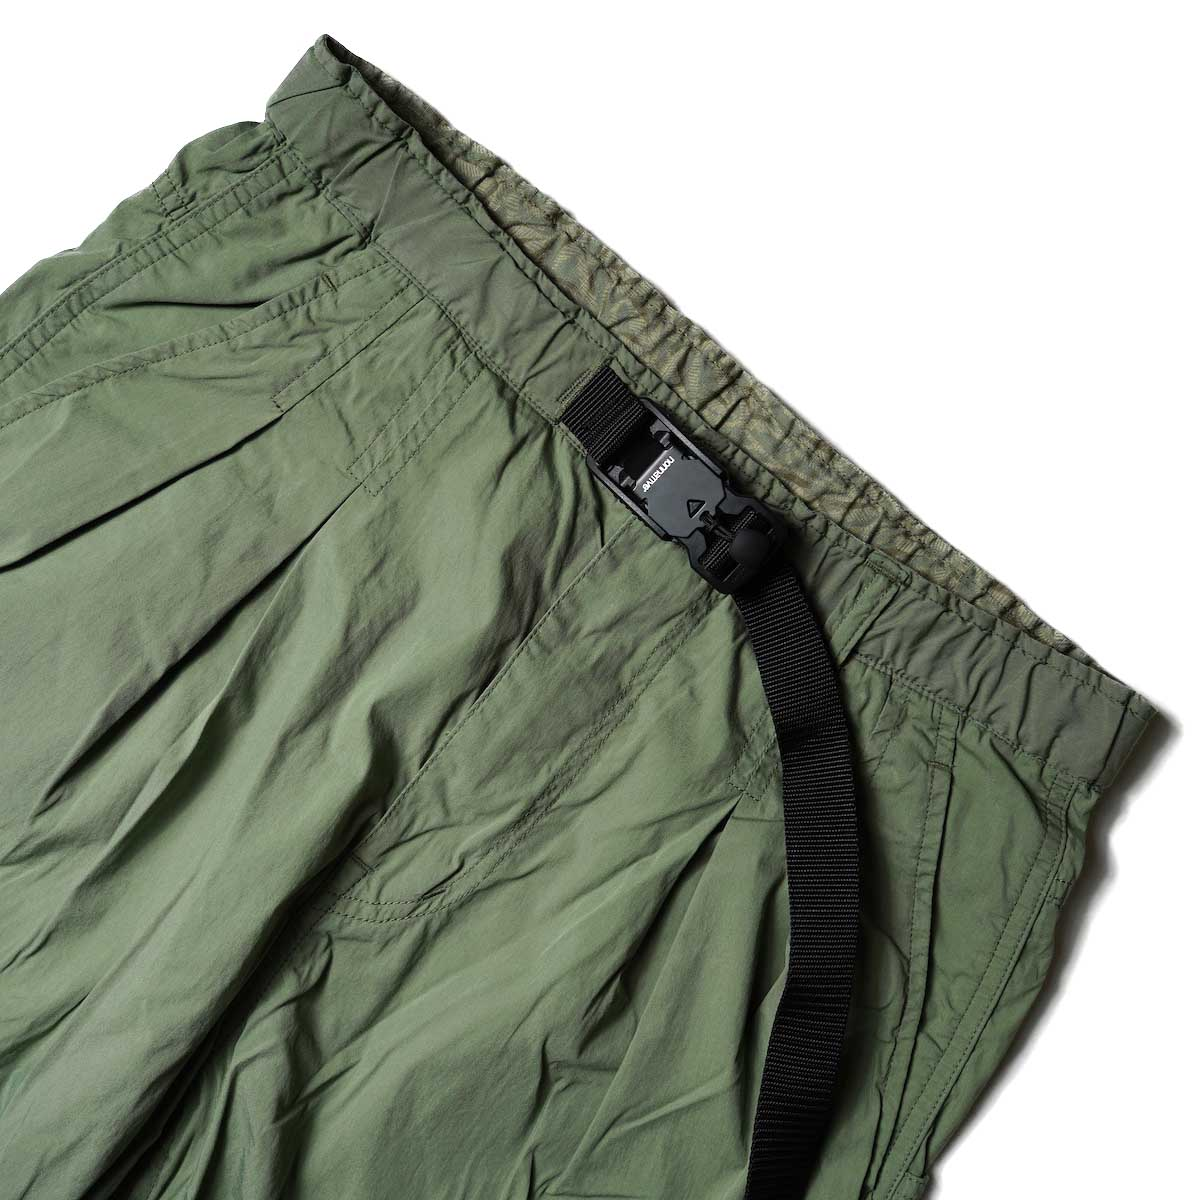 nonnative / ALPINIST EASY PANTS C/N TYPEWRITER WITH FIDLOCK® BUCKLE (Olive)ウエスト